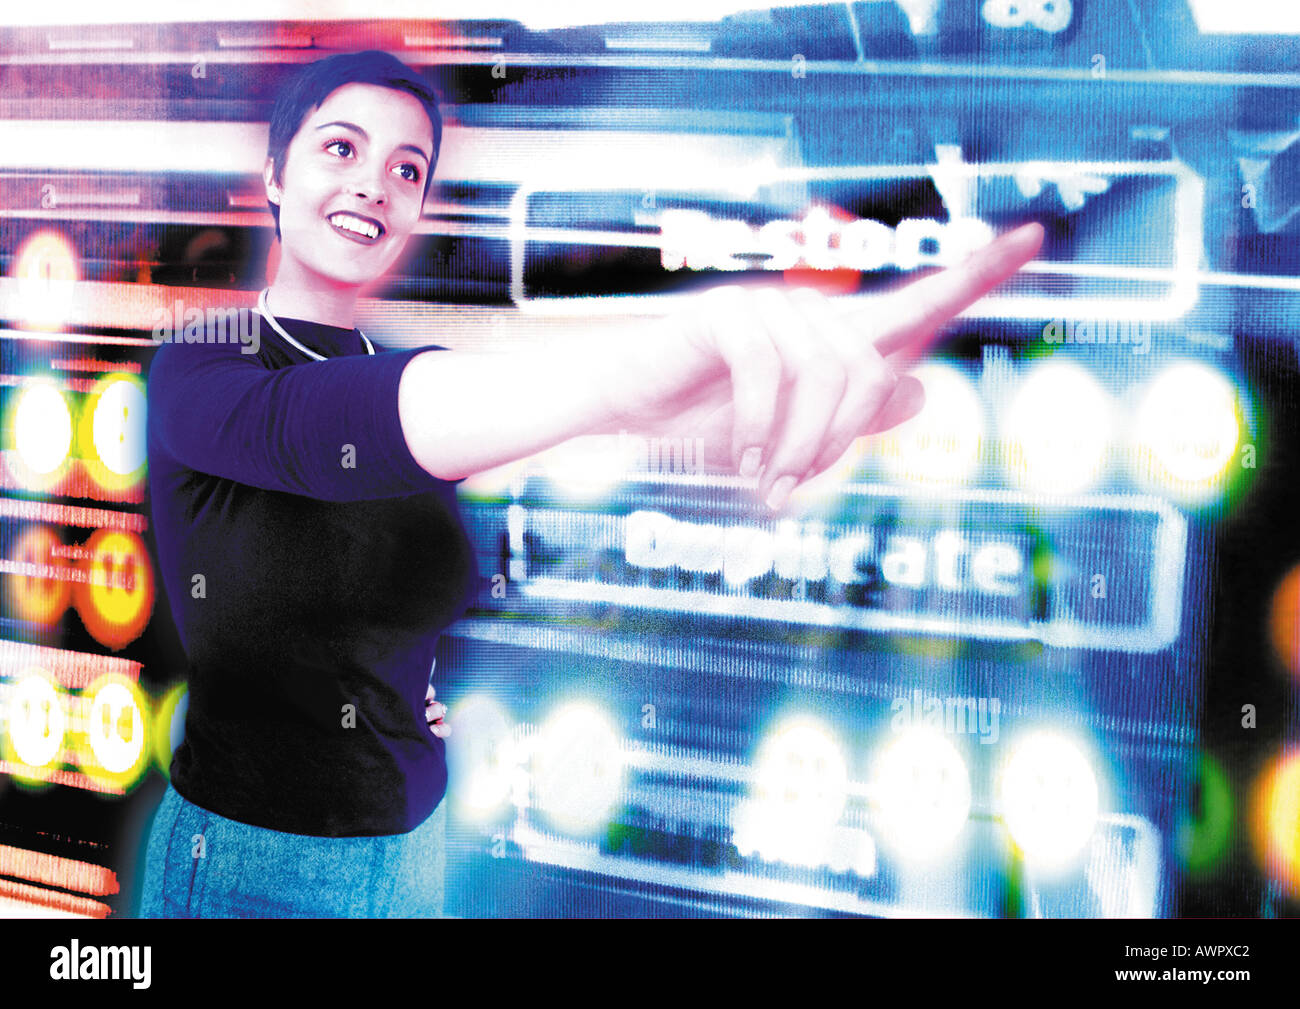 Young woman smiling in cyberspace, pointing, digital composite. - Stock Image